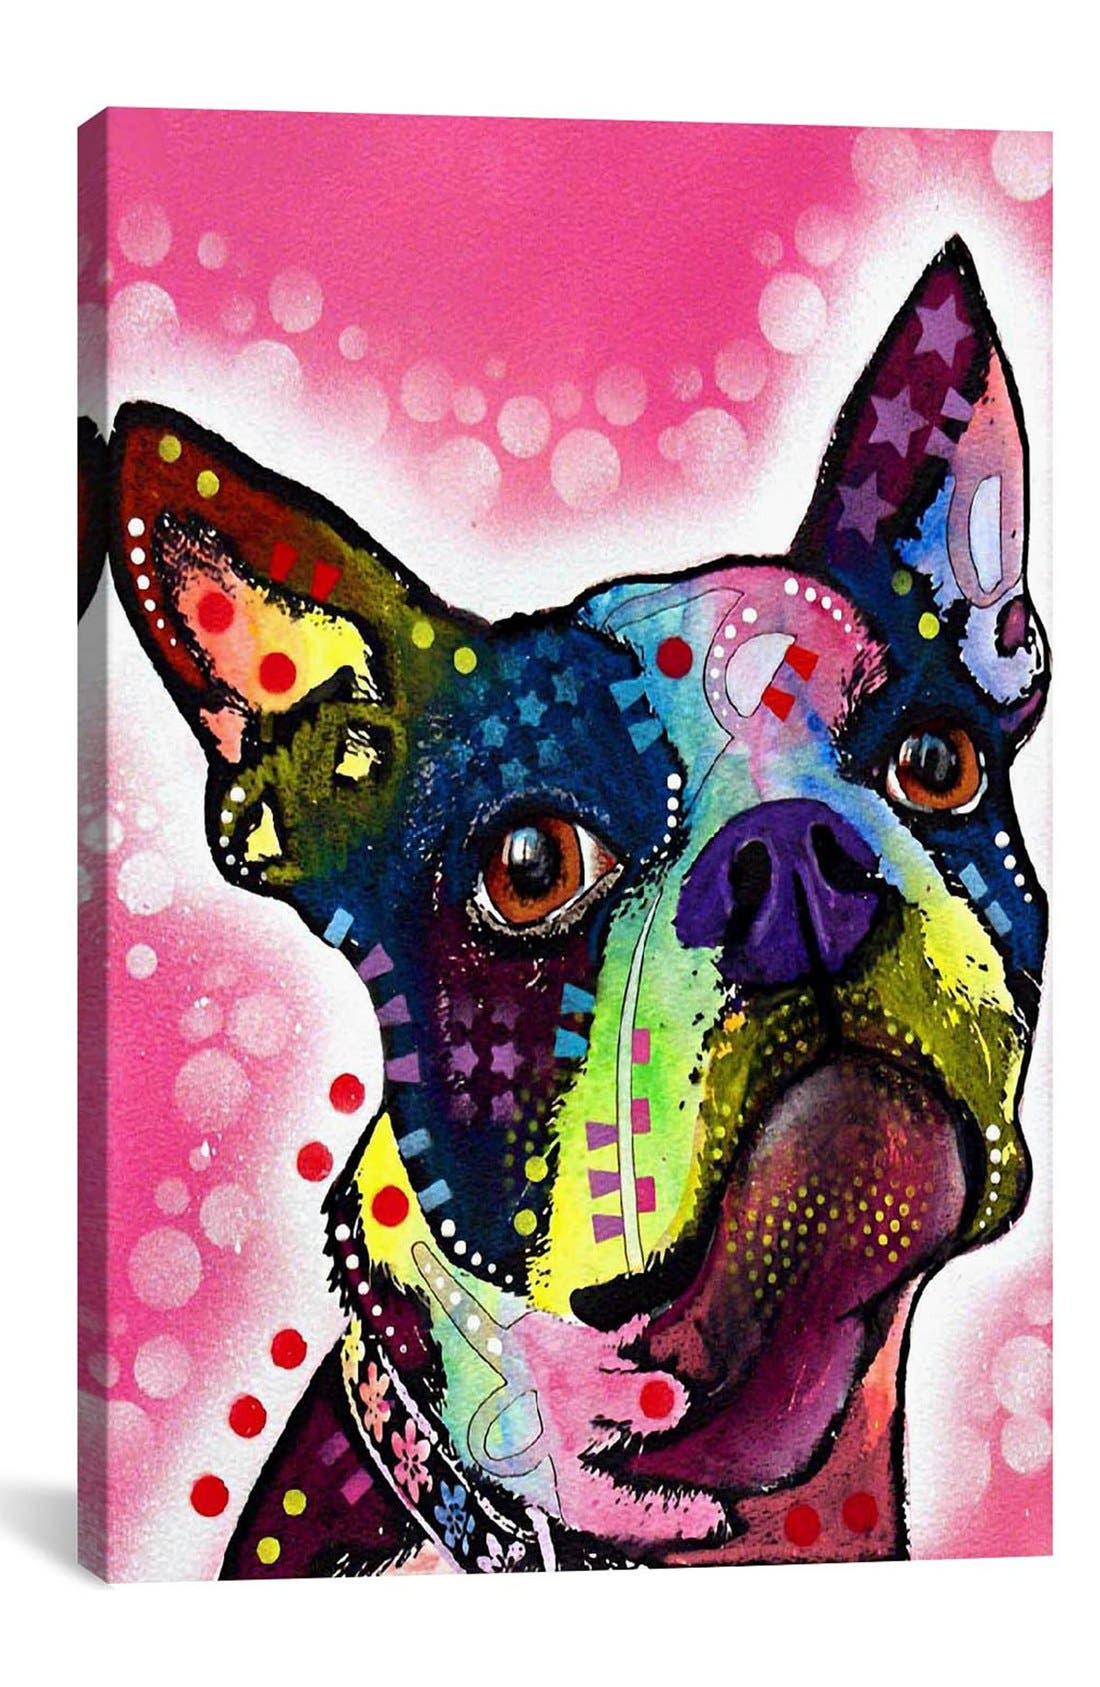 Alternate Image 1 Selected - iCanvas 'Boston Terrier - Dean Russo' Giclée Print Canvas Art